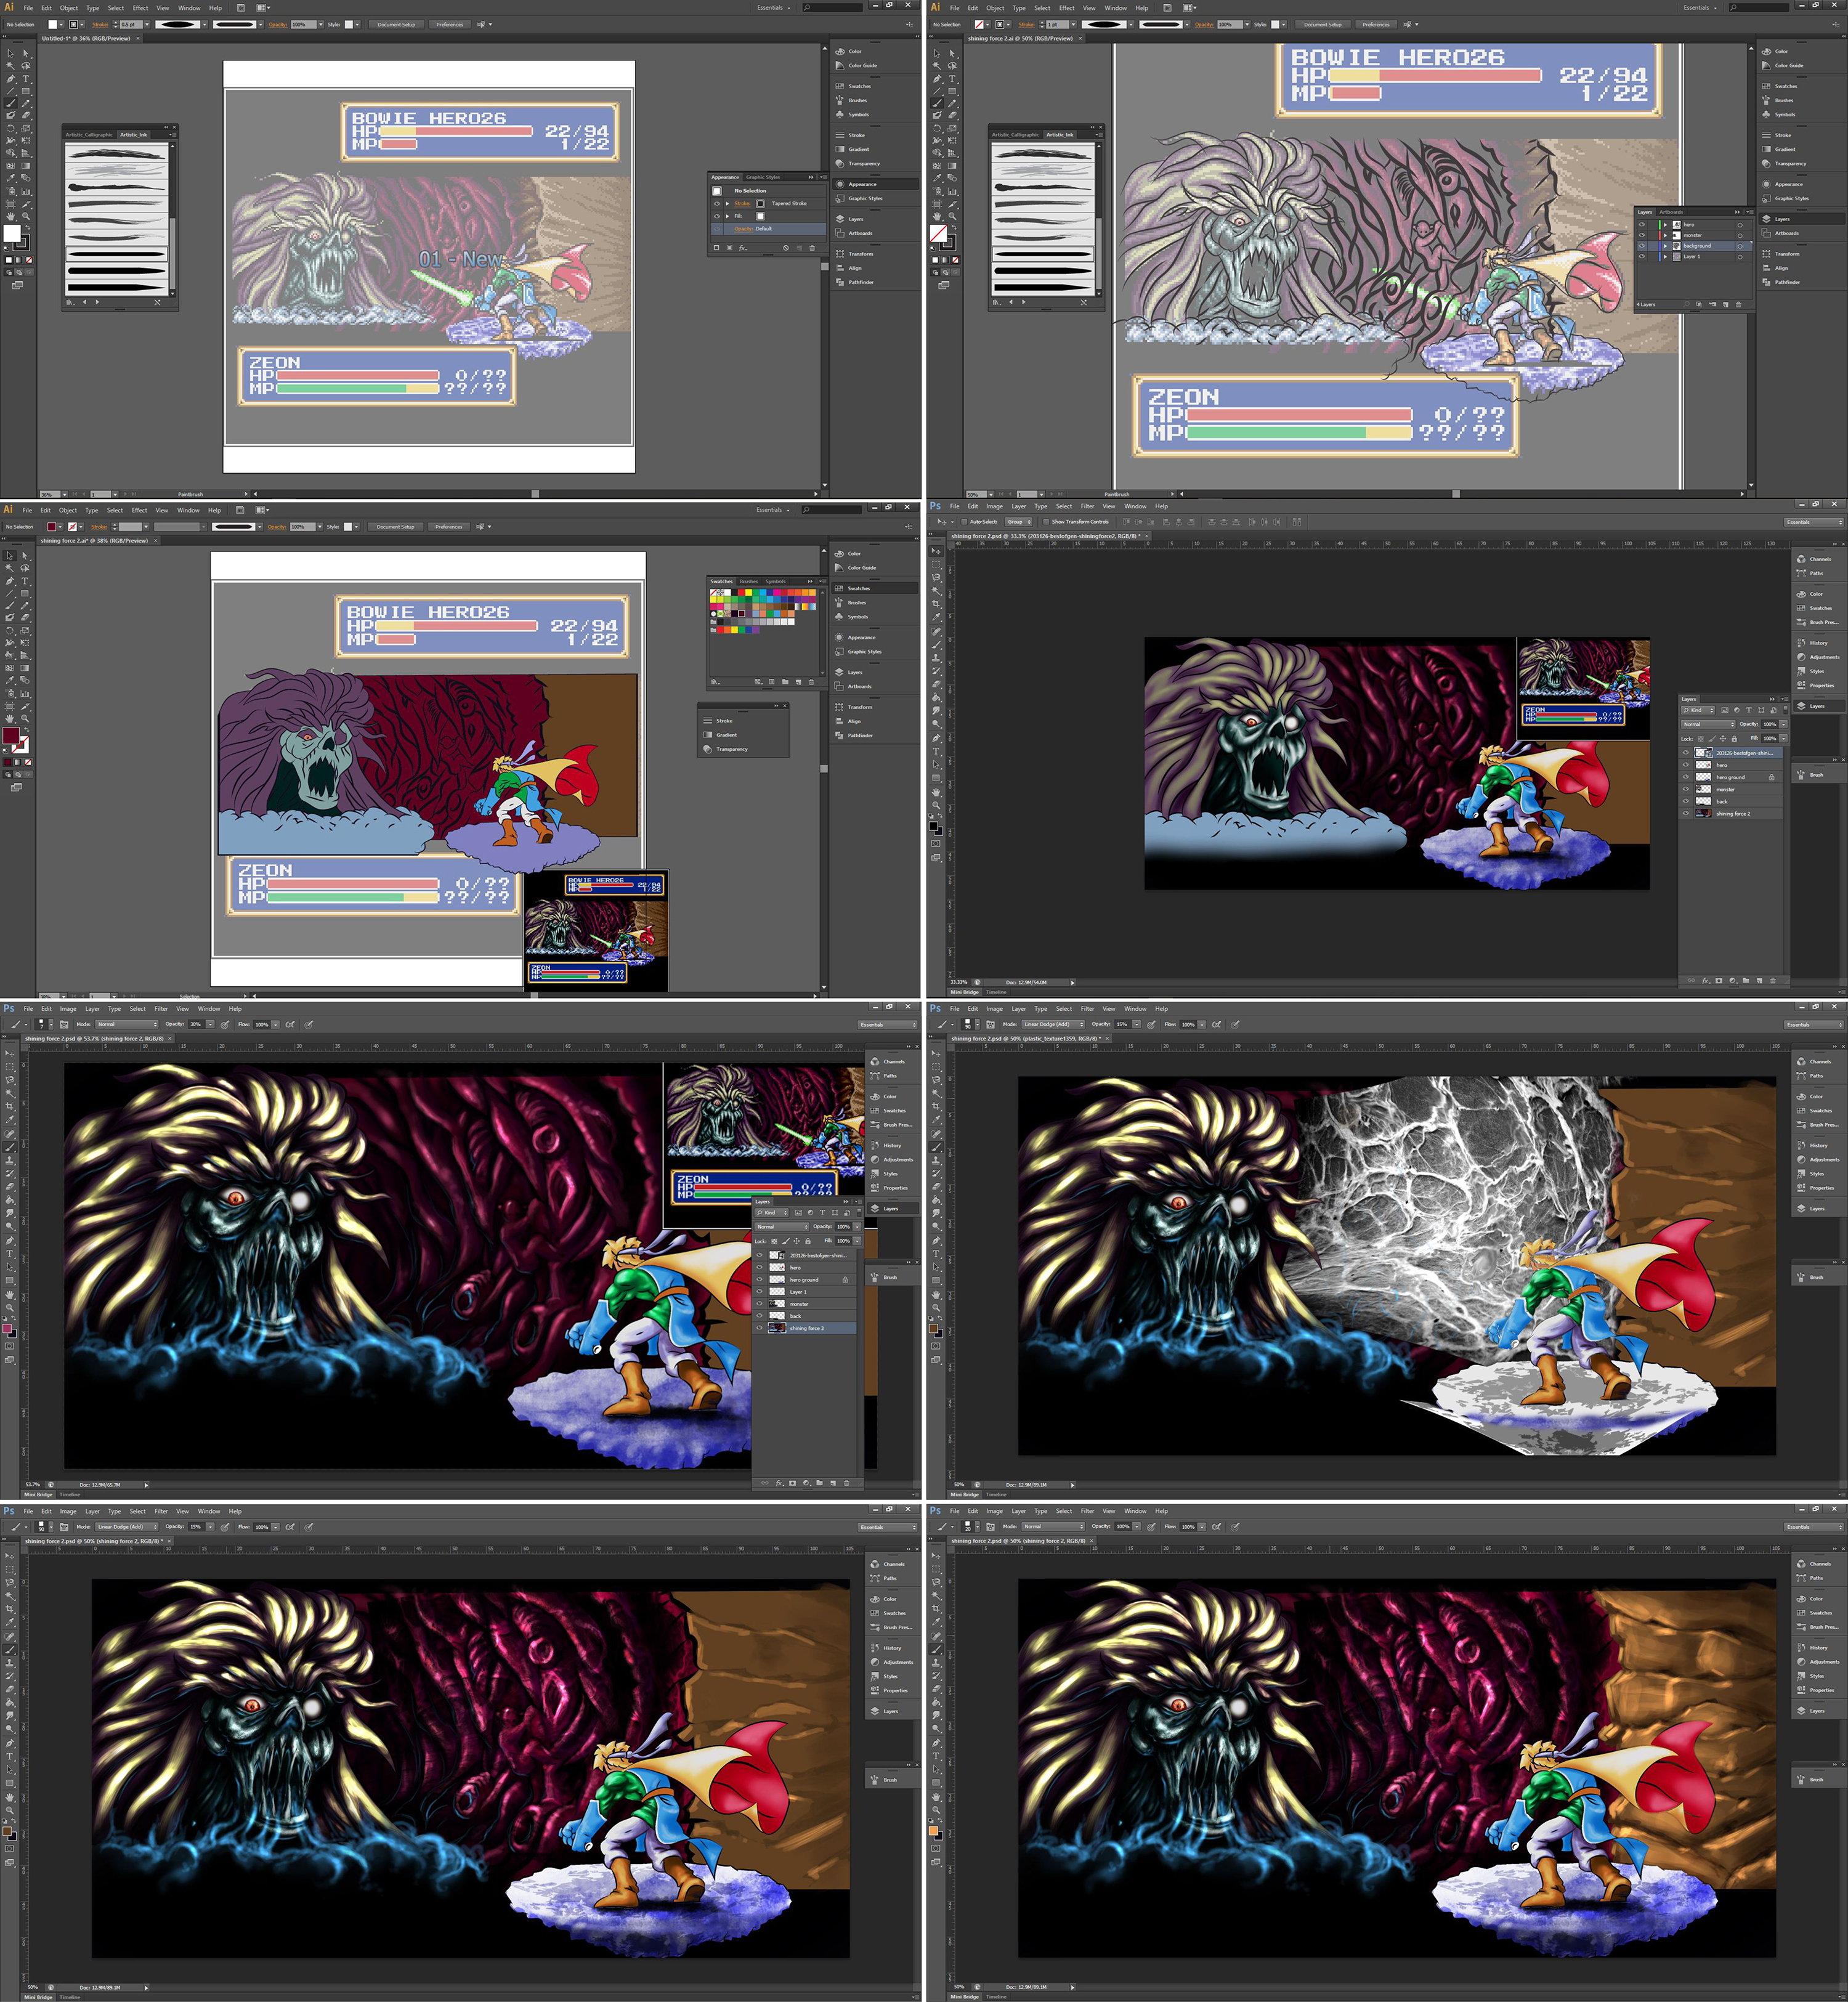 Shining Force 2 creation process